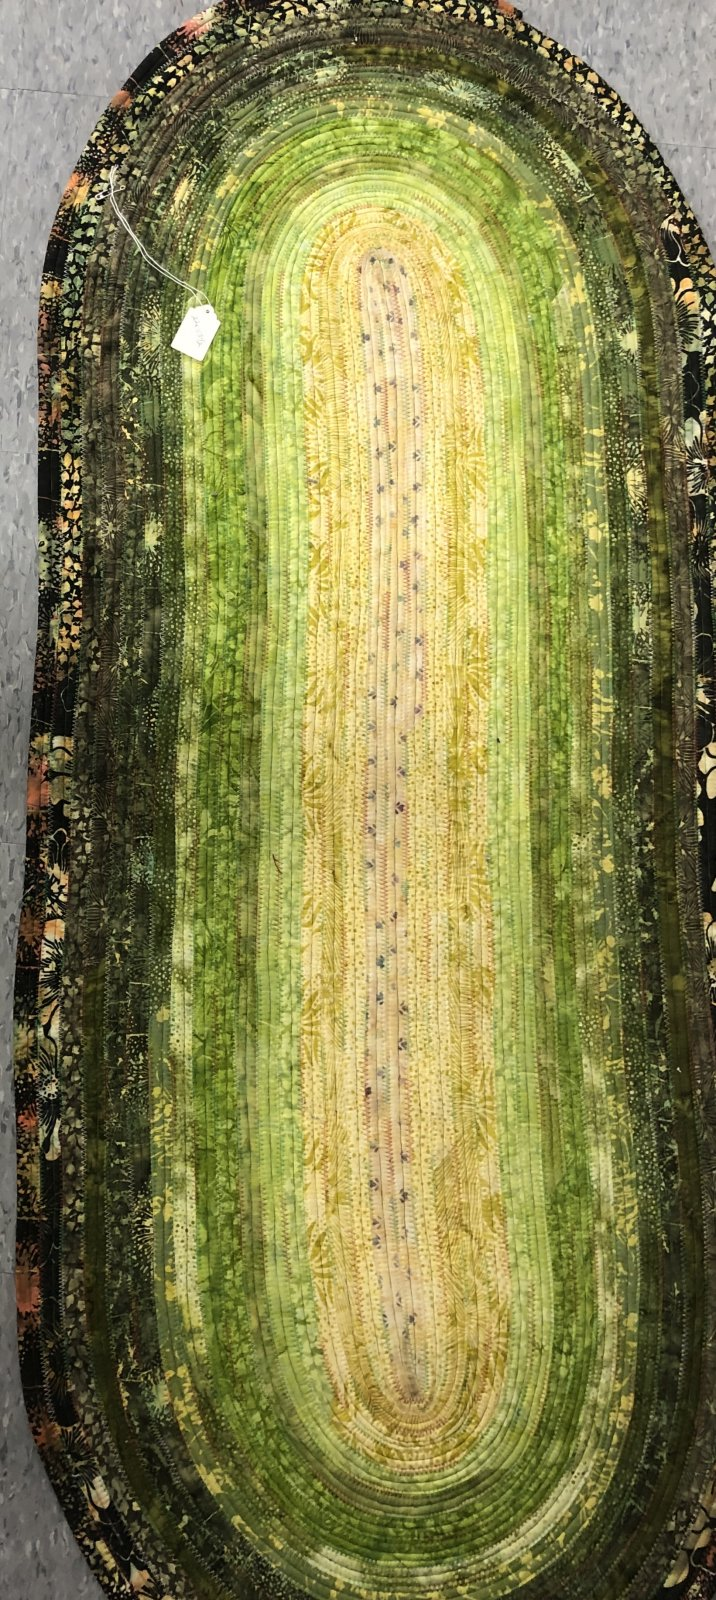 Jelly Roll Rug 22 x 53.5